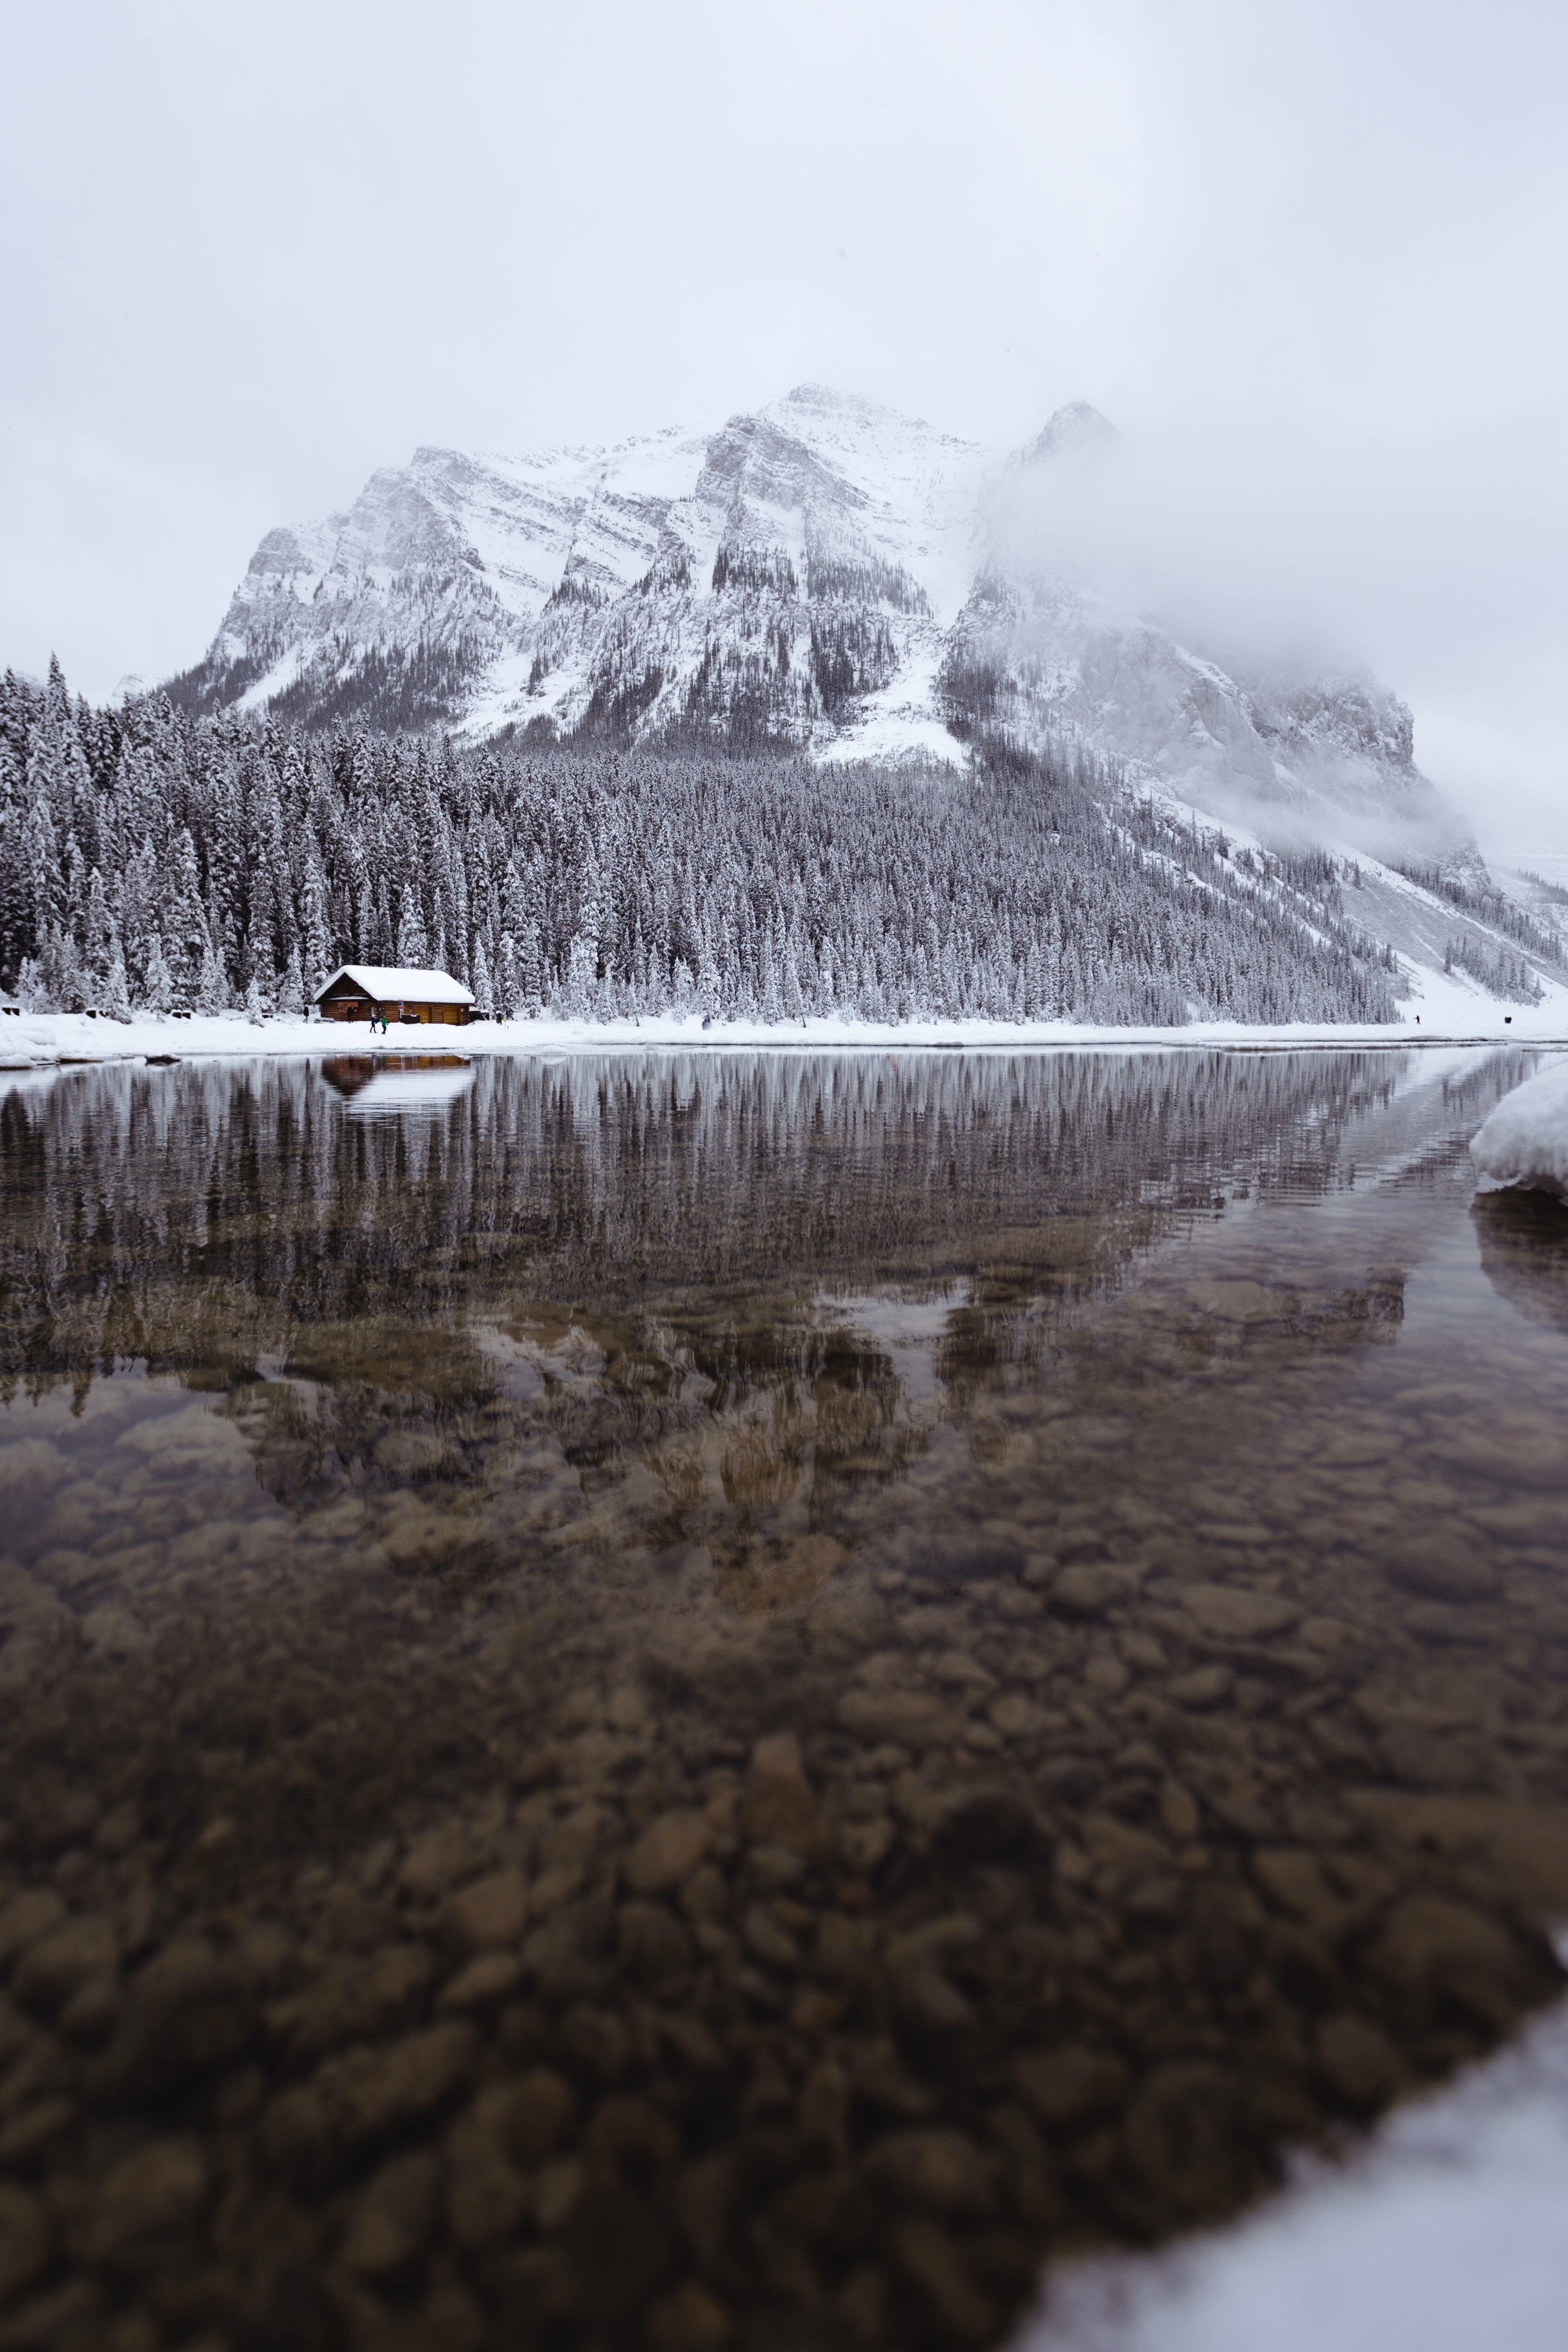 mountain covered with snow near body of water